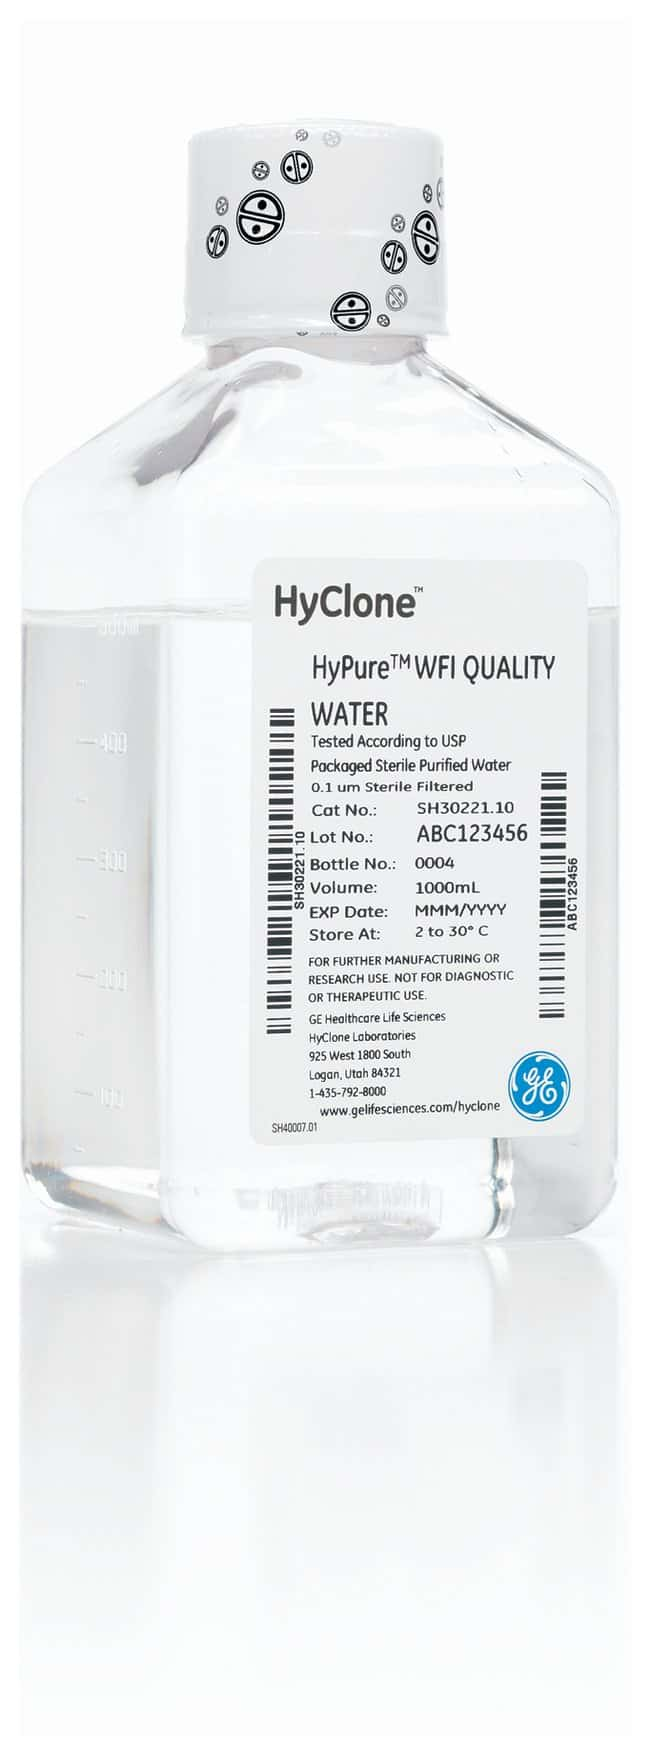 HyClone™ Water, Cell Culture Grade (Endotoxin-Free) 500mL; Cell Culture Grade Water HyClone™ Water, Cell Culture Grade (Endotoxin-Free)